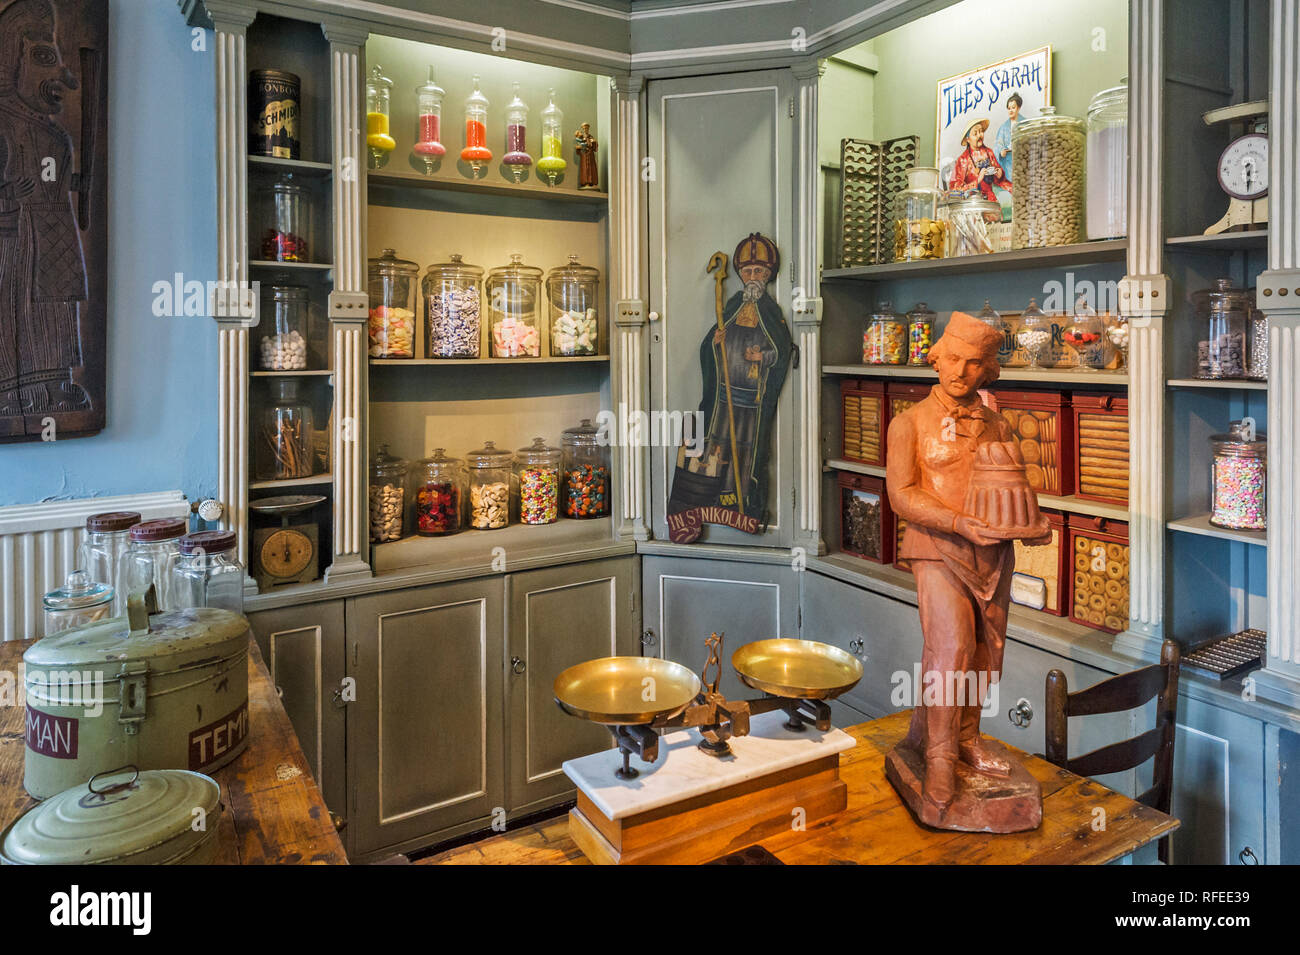 The House of Alijn museum puts the ordinary daily life of 20th century people in the spotlight in Ghent, Belgium - Stock Image